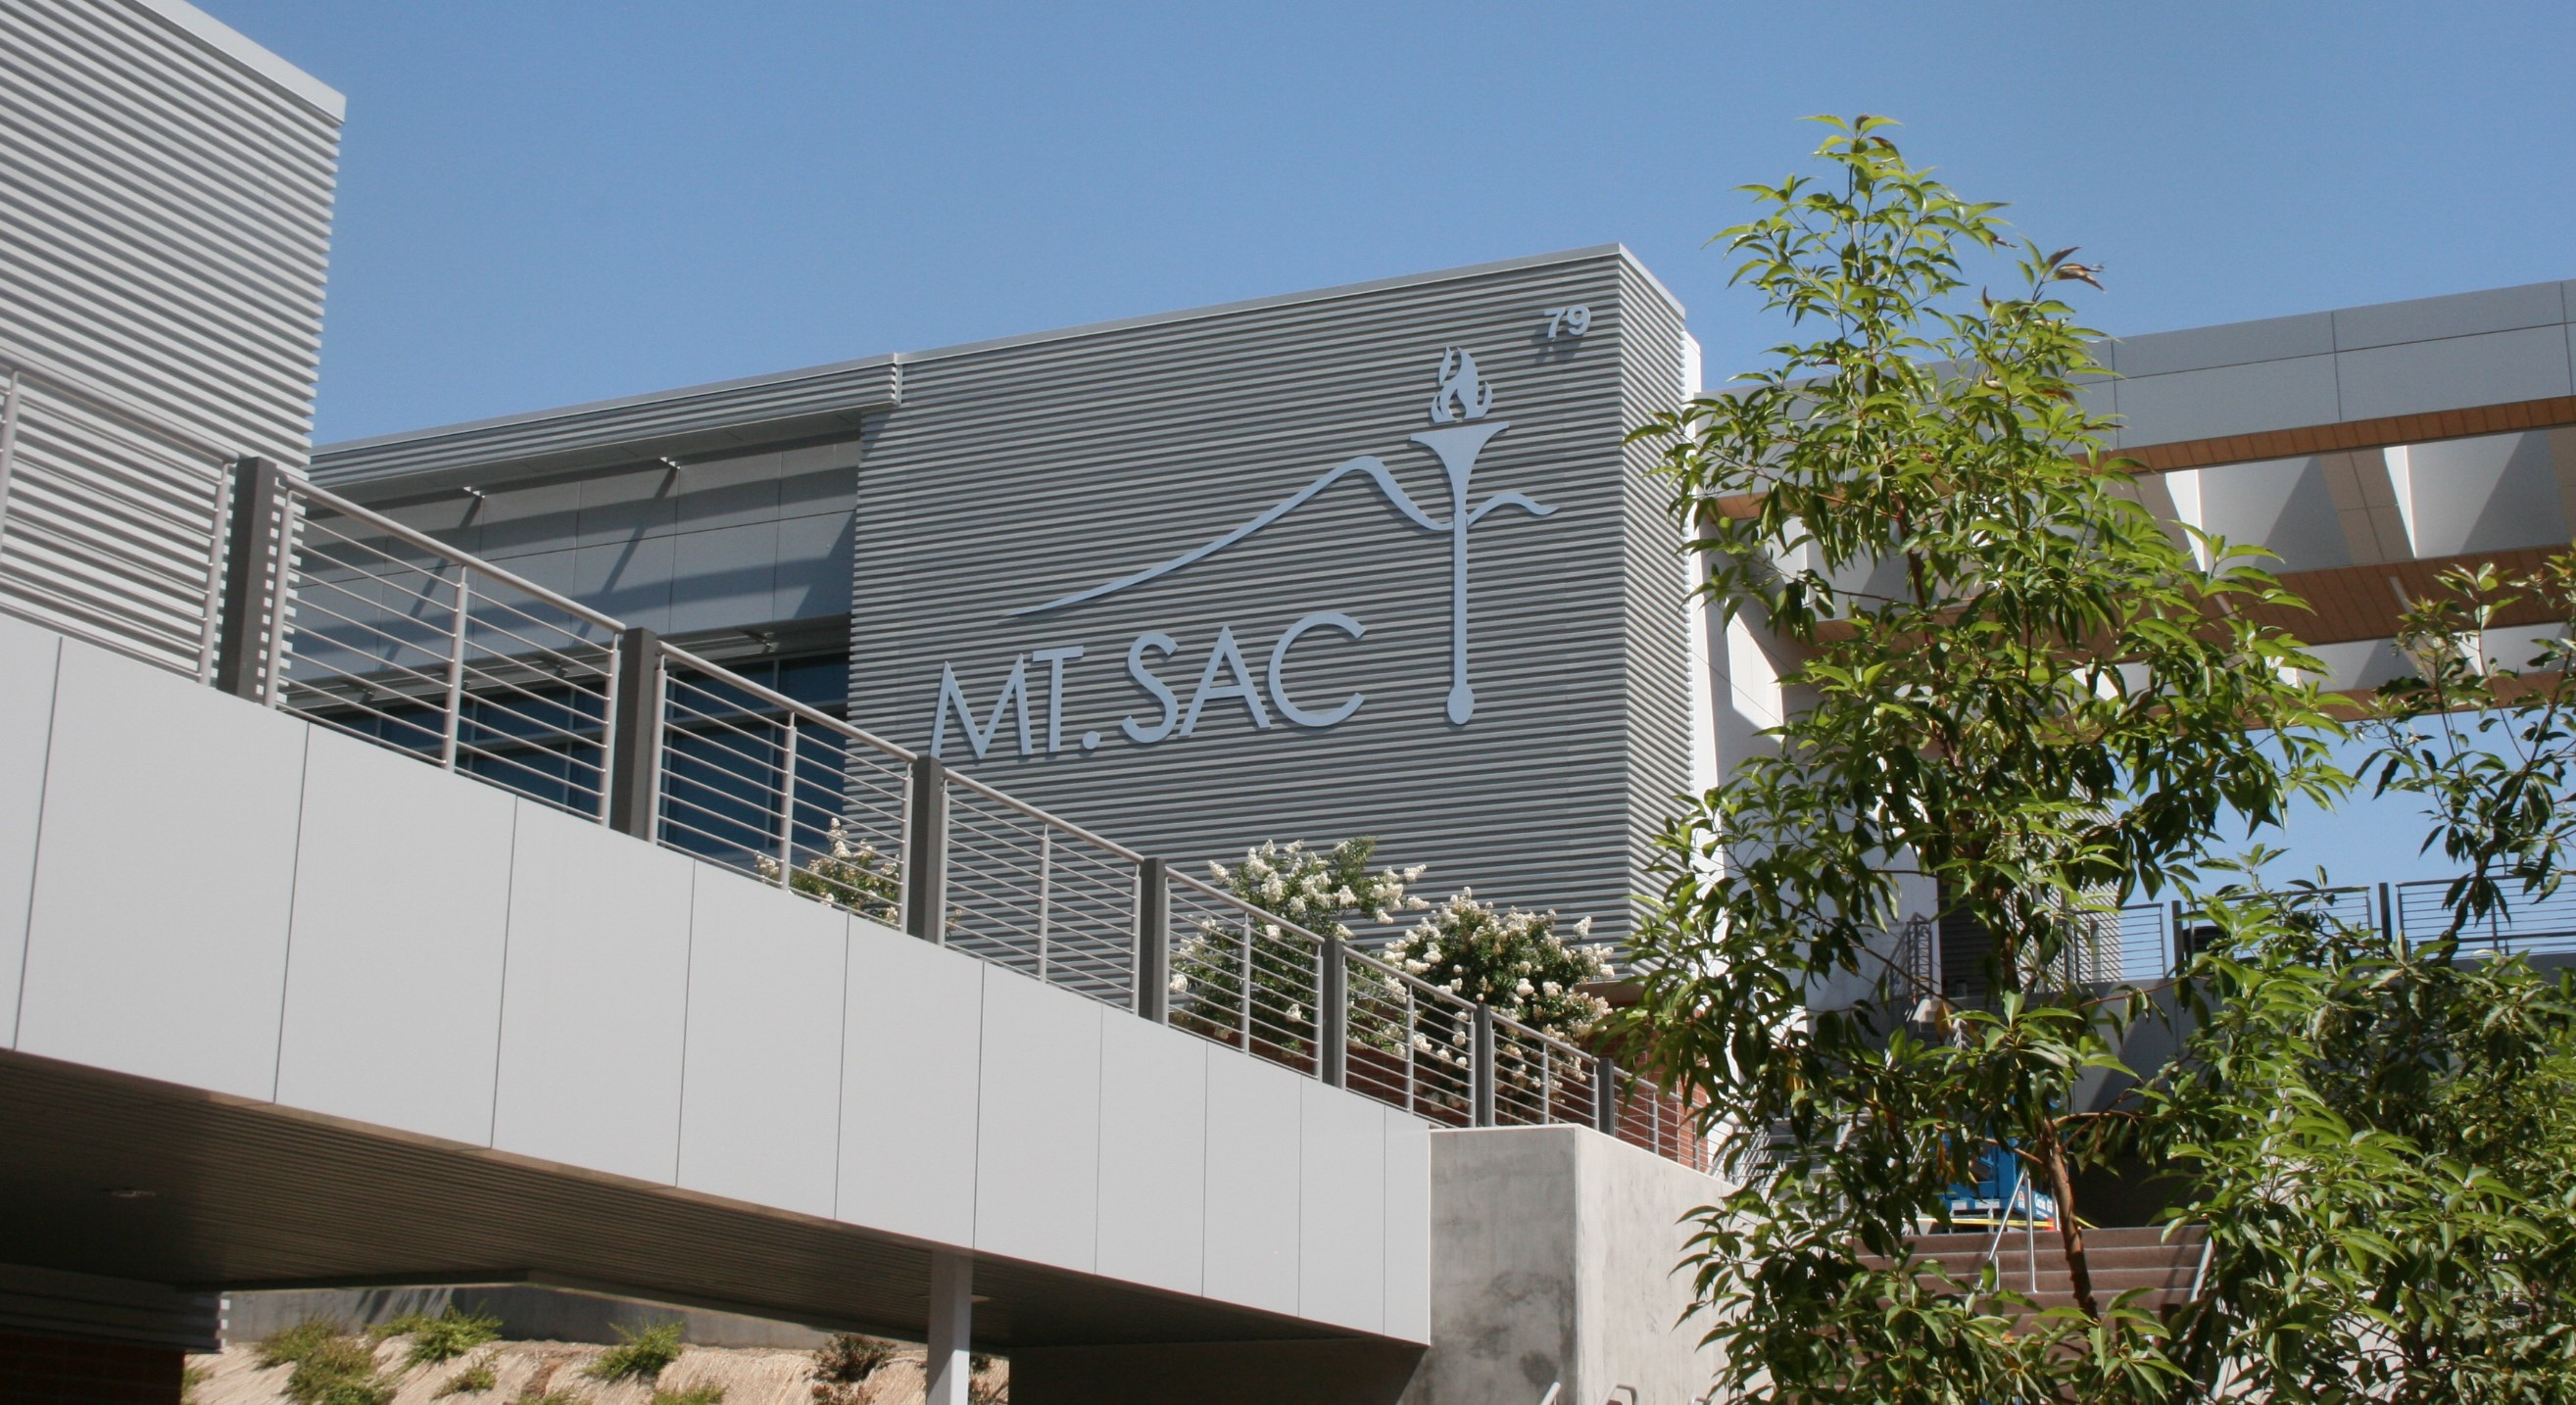 All design aspects for the state-of-the-art Business and Computer Technology Complex at Mt. San Antonio College were handled in house.